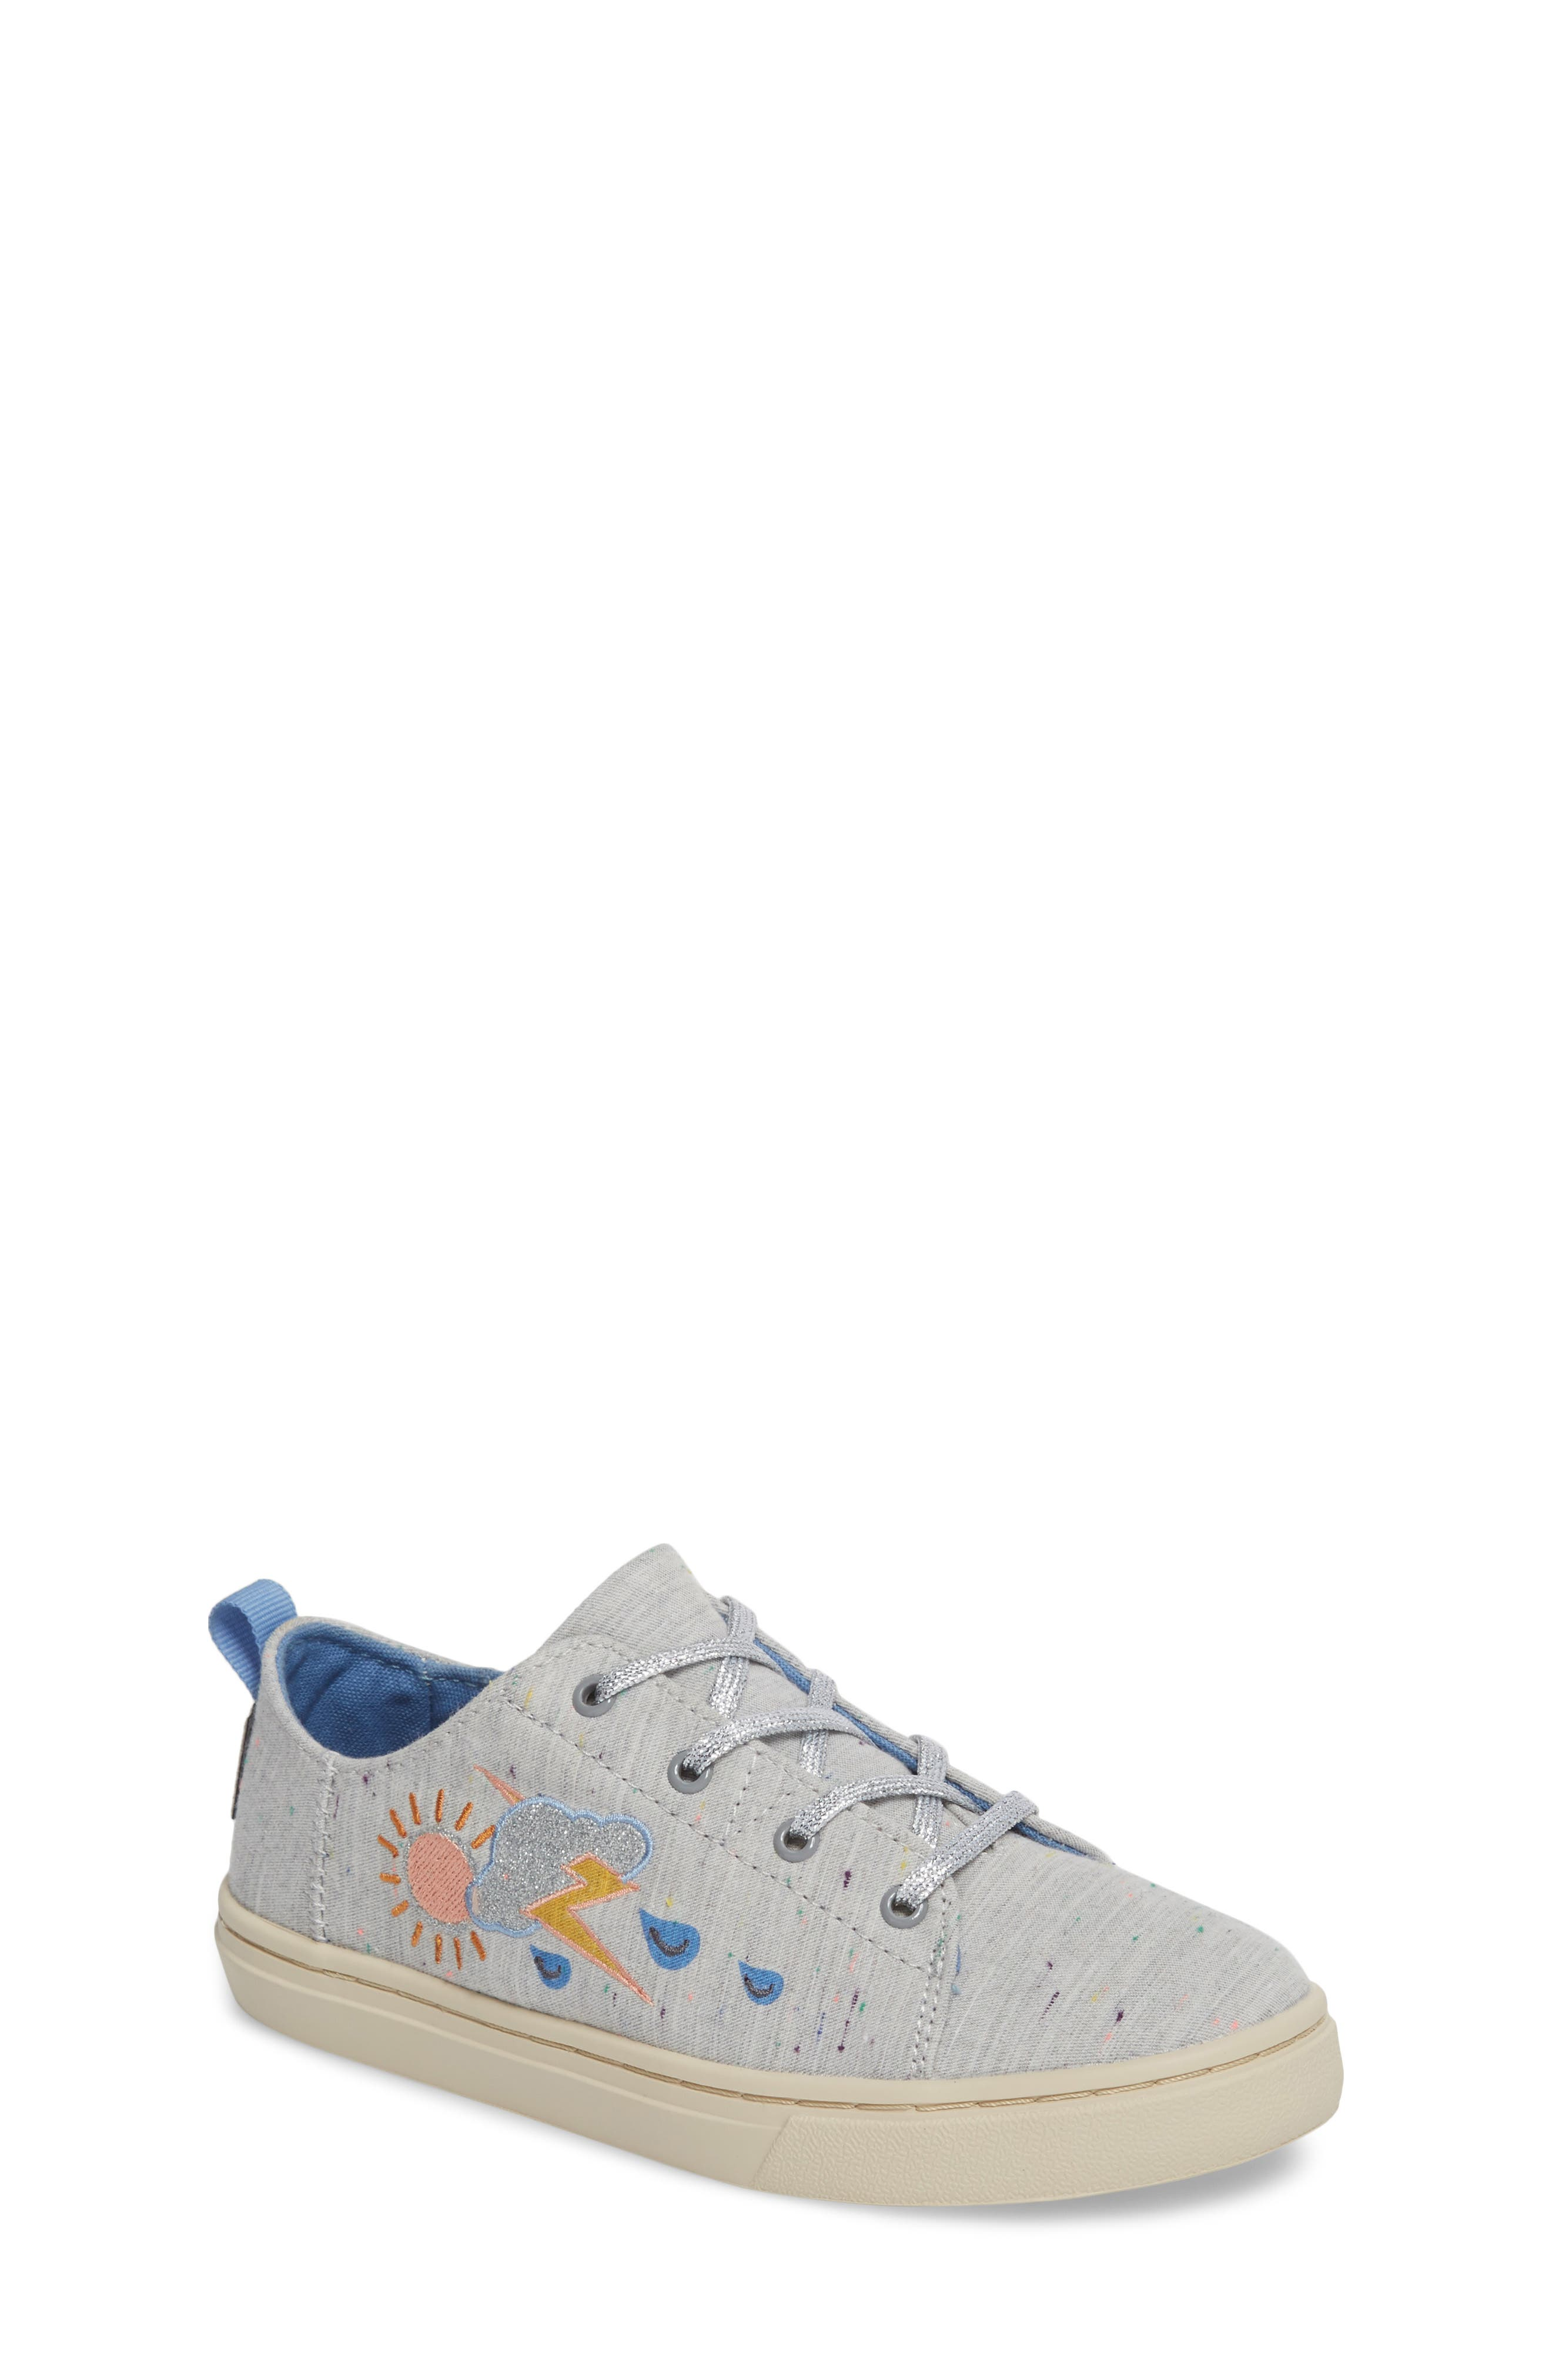 Lenny Embroidered Sneaker,                         Main,                         color, 020